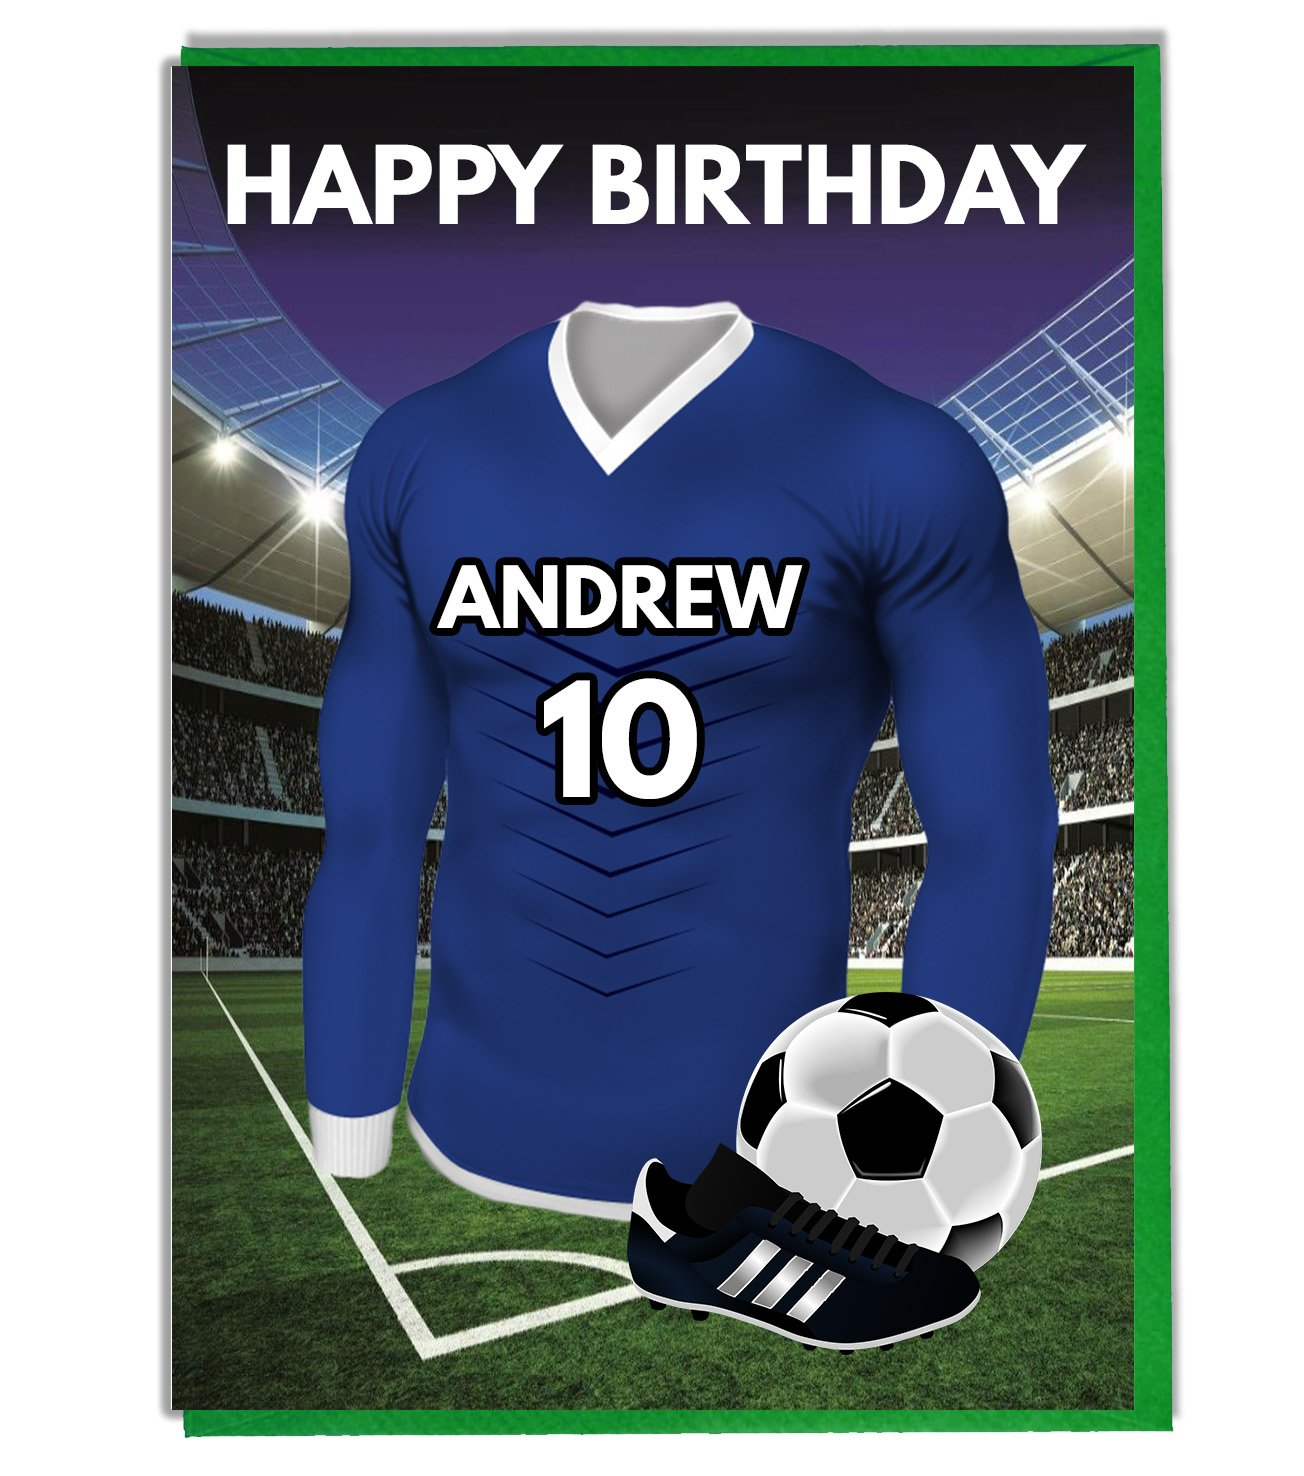 OFFICIAL LICENSED ~ CHELSEA FOOTBALL CLUB BIRTHDAY CARDS FOR DAD OR SON